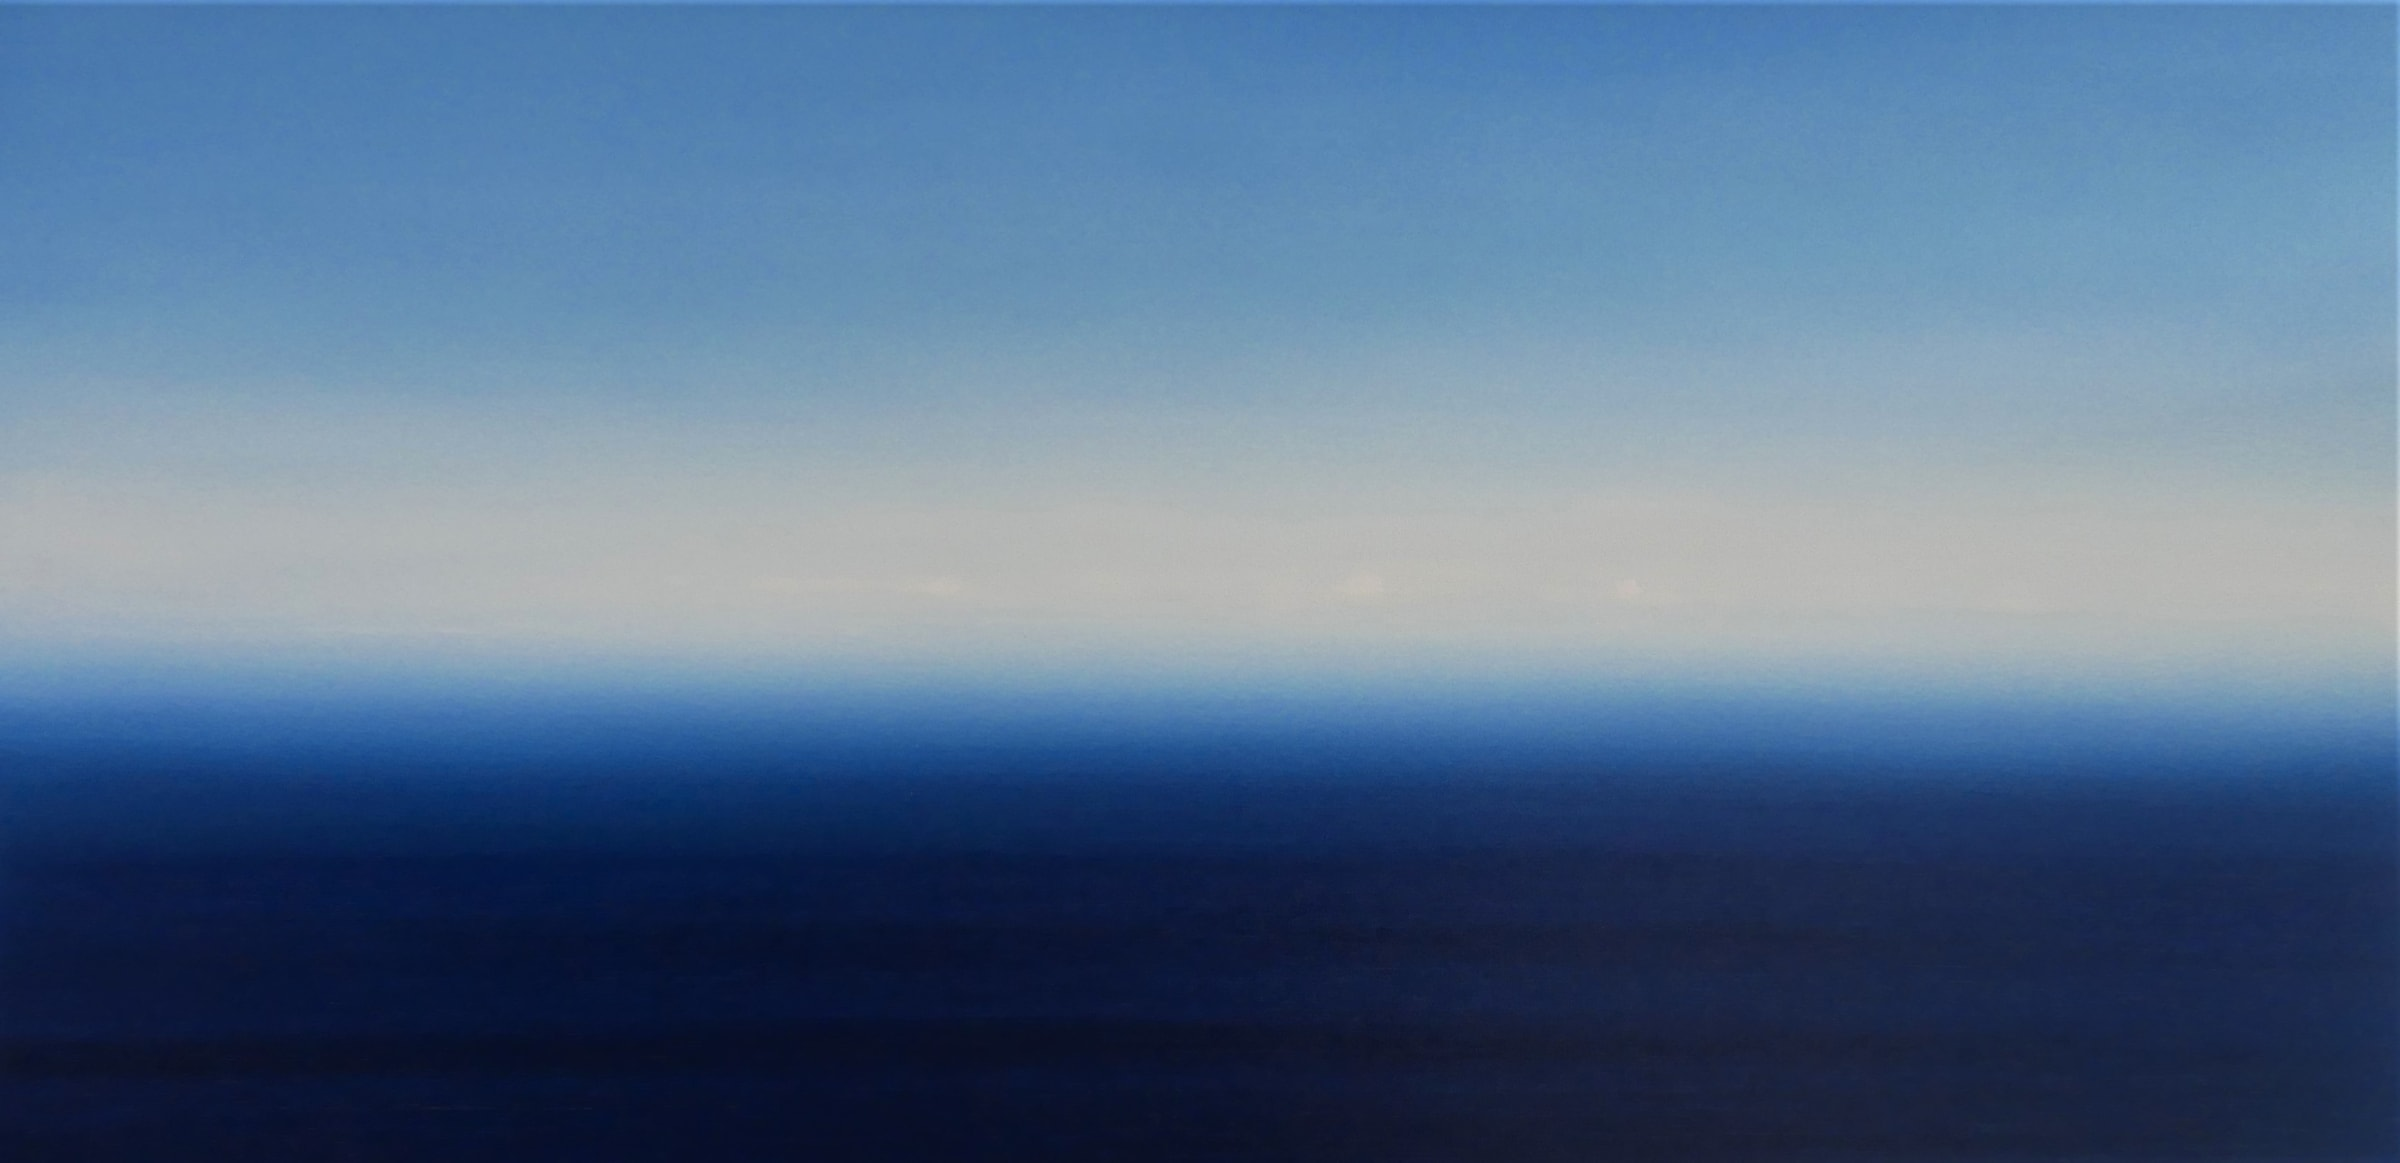 """<span class=""""link fancybox-details-link""""><a href=""""/artists/78-martyn-perryman/works/7324-martyn-perryman-calming-skies-st-ives-2-2020/"""">View Detail Page</a></span><div class=""""artist""""><strong>Martyn Perryman</strong></div> b. 1963 <div class=""""title""""><em>Calming Skies St Ives 2</em>, 2020</div> <div class=""""medium"""">oil on Canvas</div> <div class=""""dimensions"""">h. 70 cm x w. 140 cm</div><div class=""""copyright_line"""">Own Art £120 x 10 months, 0% APR</div>"""